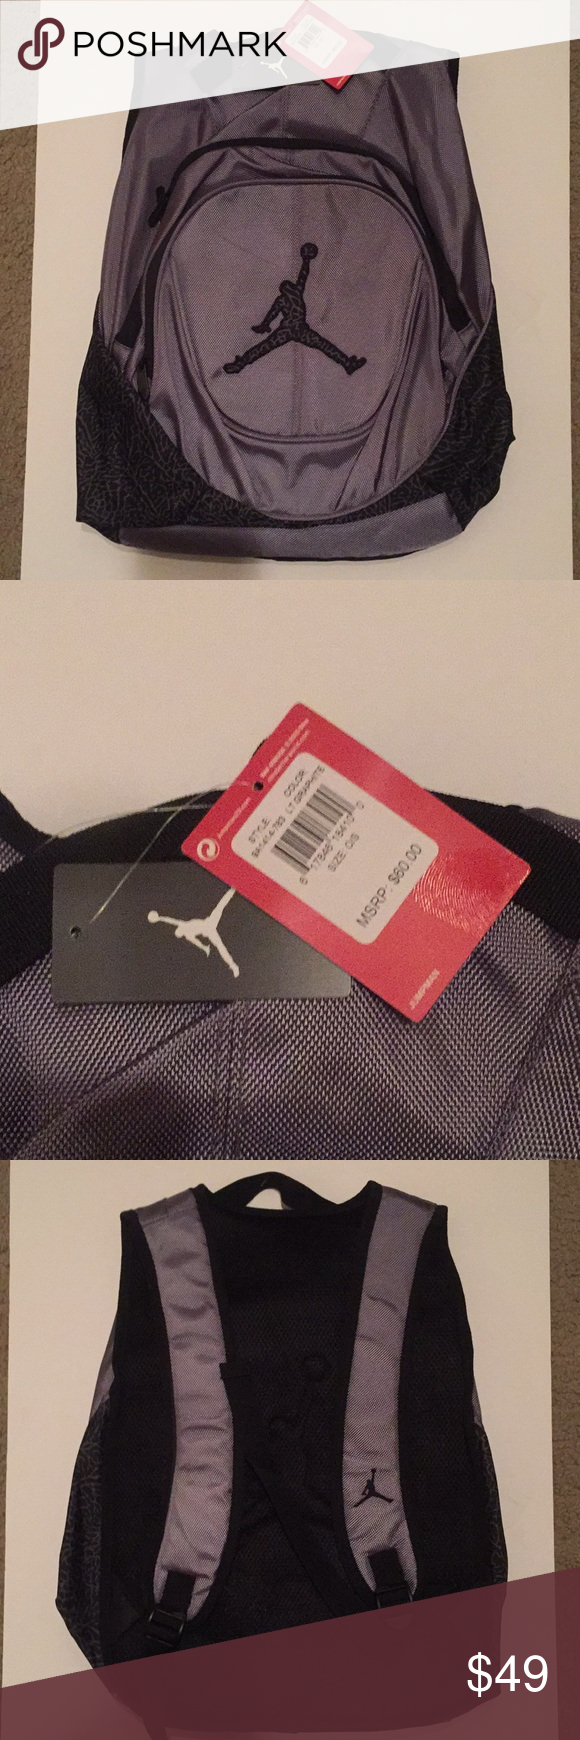 131a9562c682b0 NEW Jordan Brand Backpack Brand new gray and black Jordan Brand Backpack!  The tags are still attached and read  60! Jordan Bags Backpacks